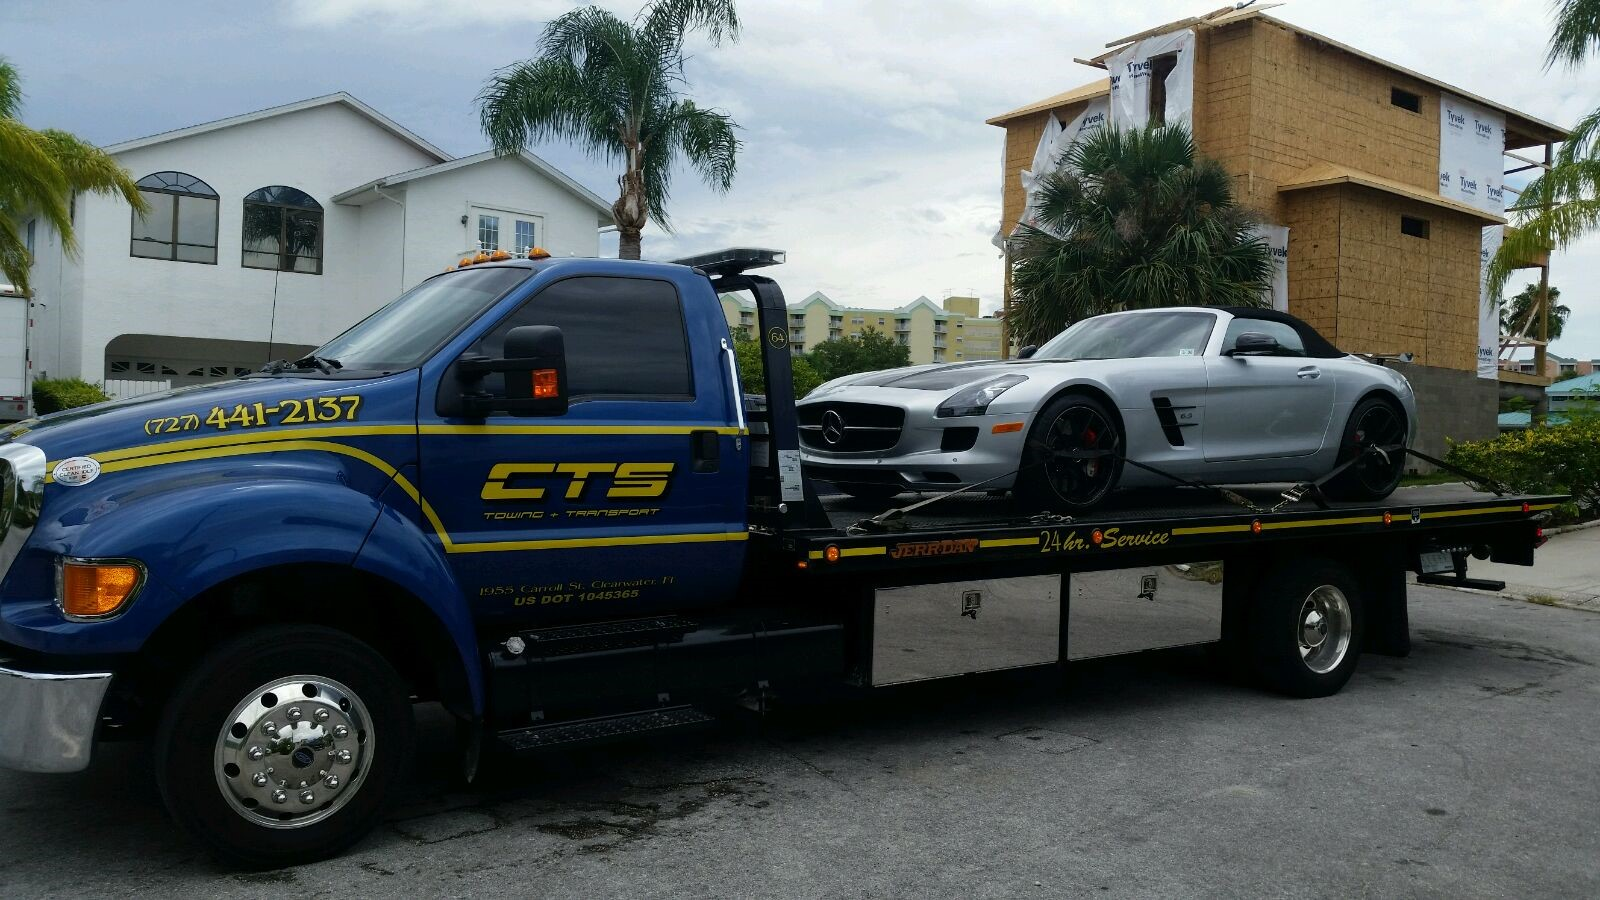 Mercedes carefully being towed by CTS Tow Truck